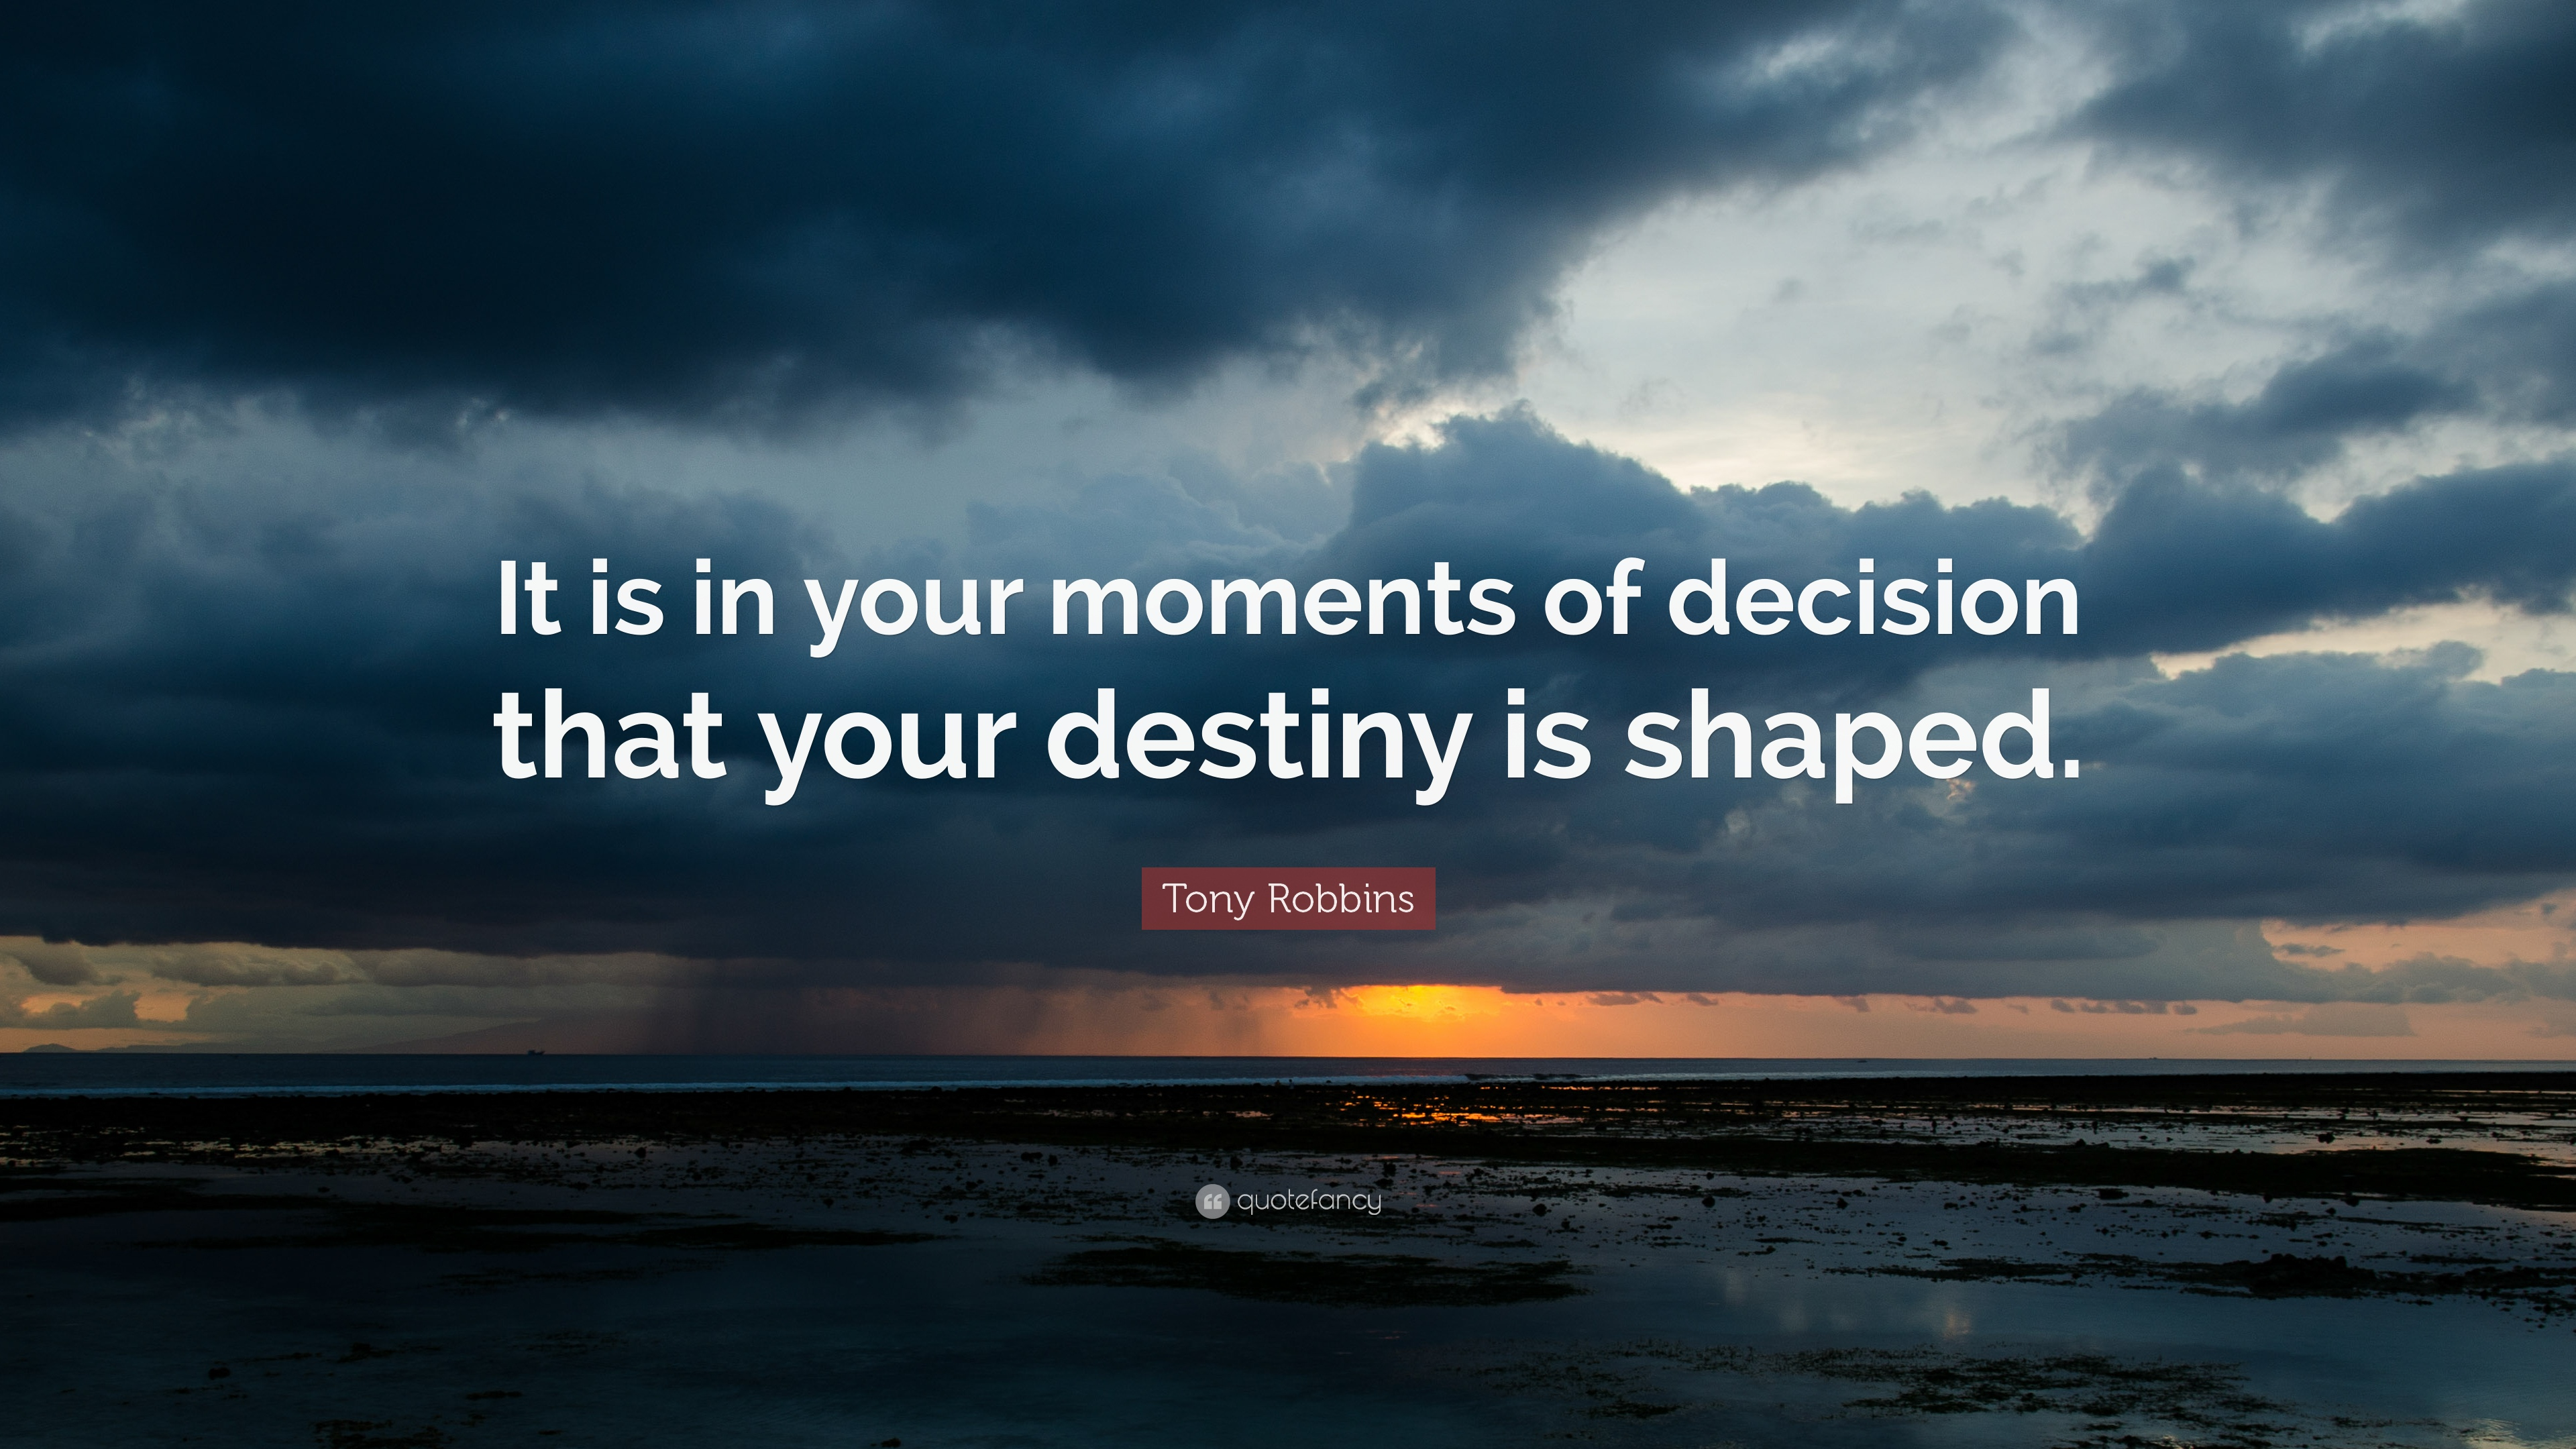 32190-Tony-Robbins-Quote-It-is-in-your-moments-of-decision-that-your.jpg